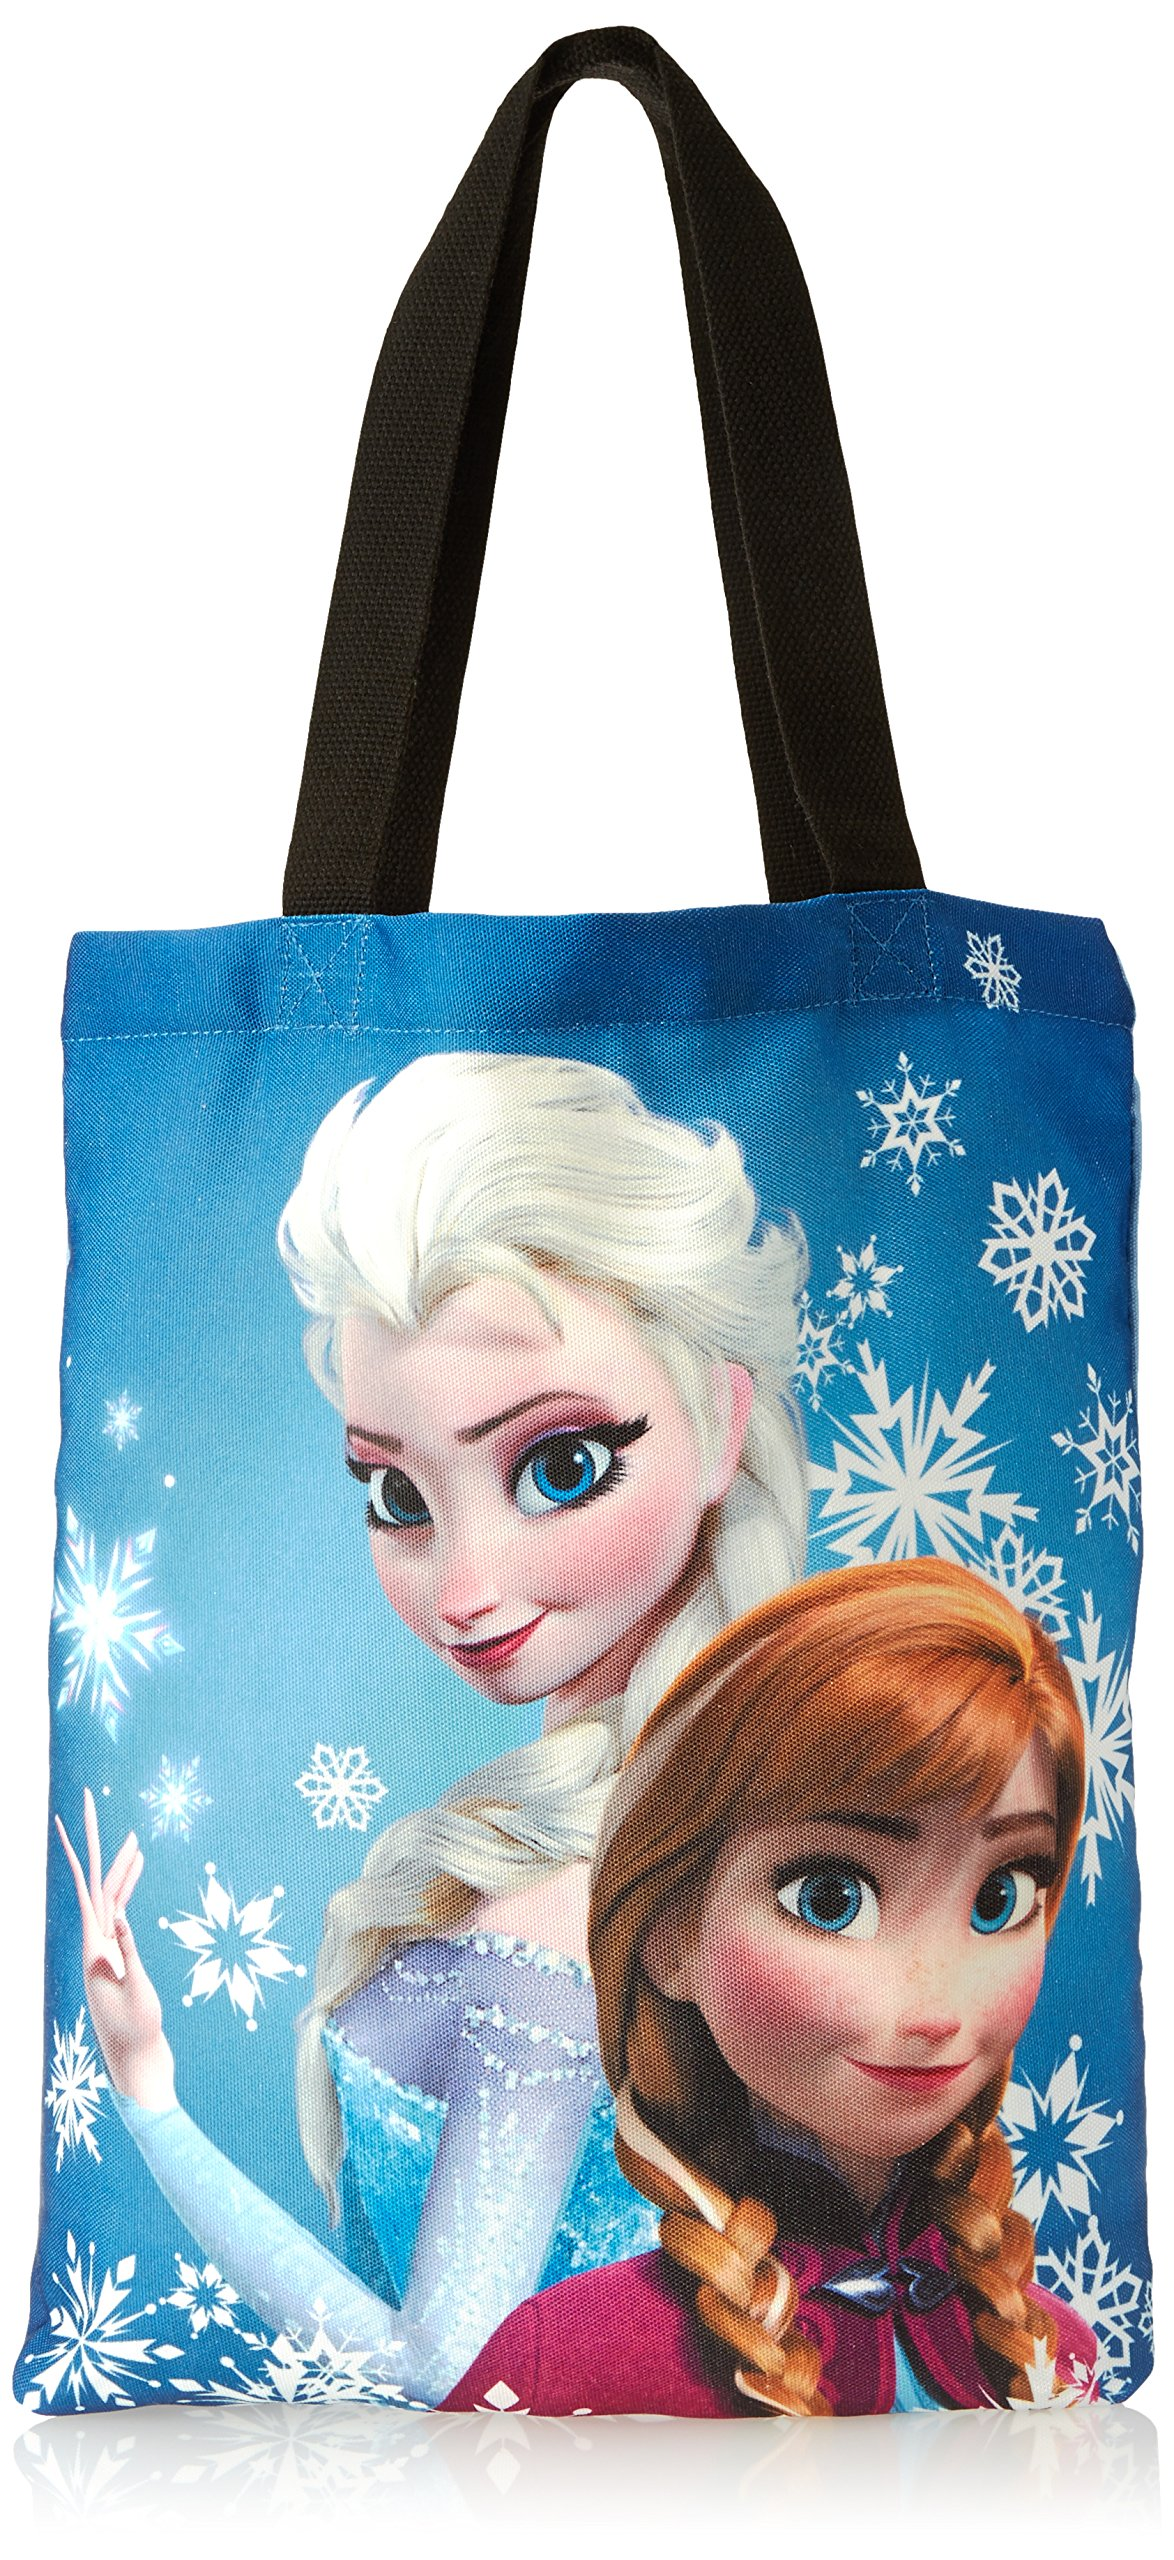 Concept One Handbags Frozen Anna and Elsa Sublimation Print Shoulder Bag, Royal, One Size by Concept One Handbags (Image #1)